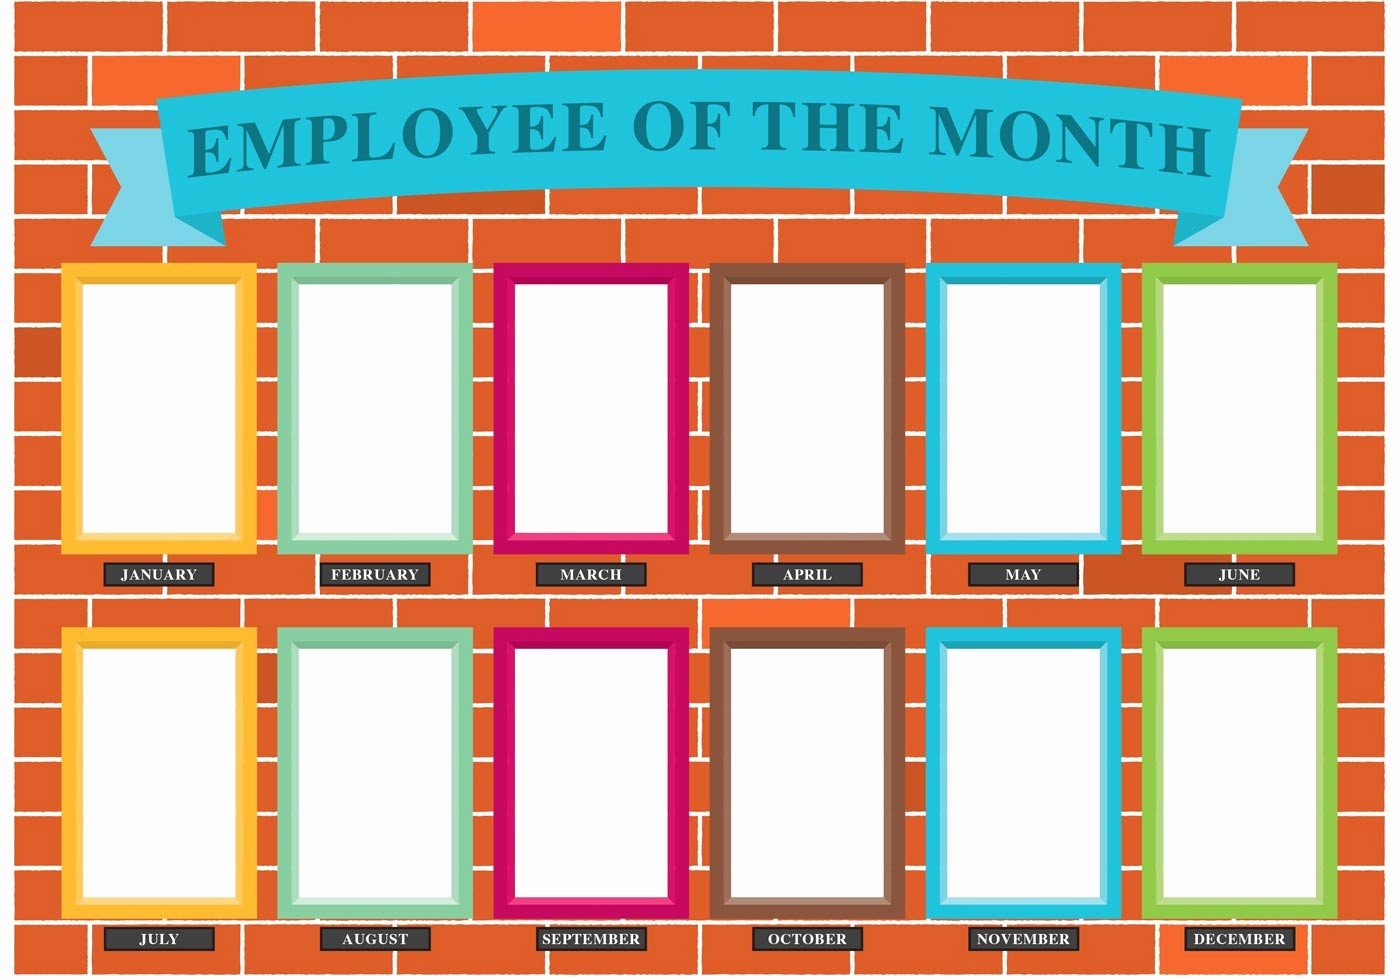 Employee Of the Month Sample Awesome Employee the Month Wall Vector Download Free Vector